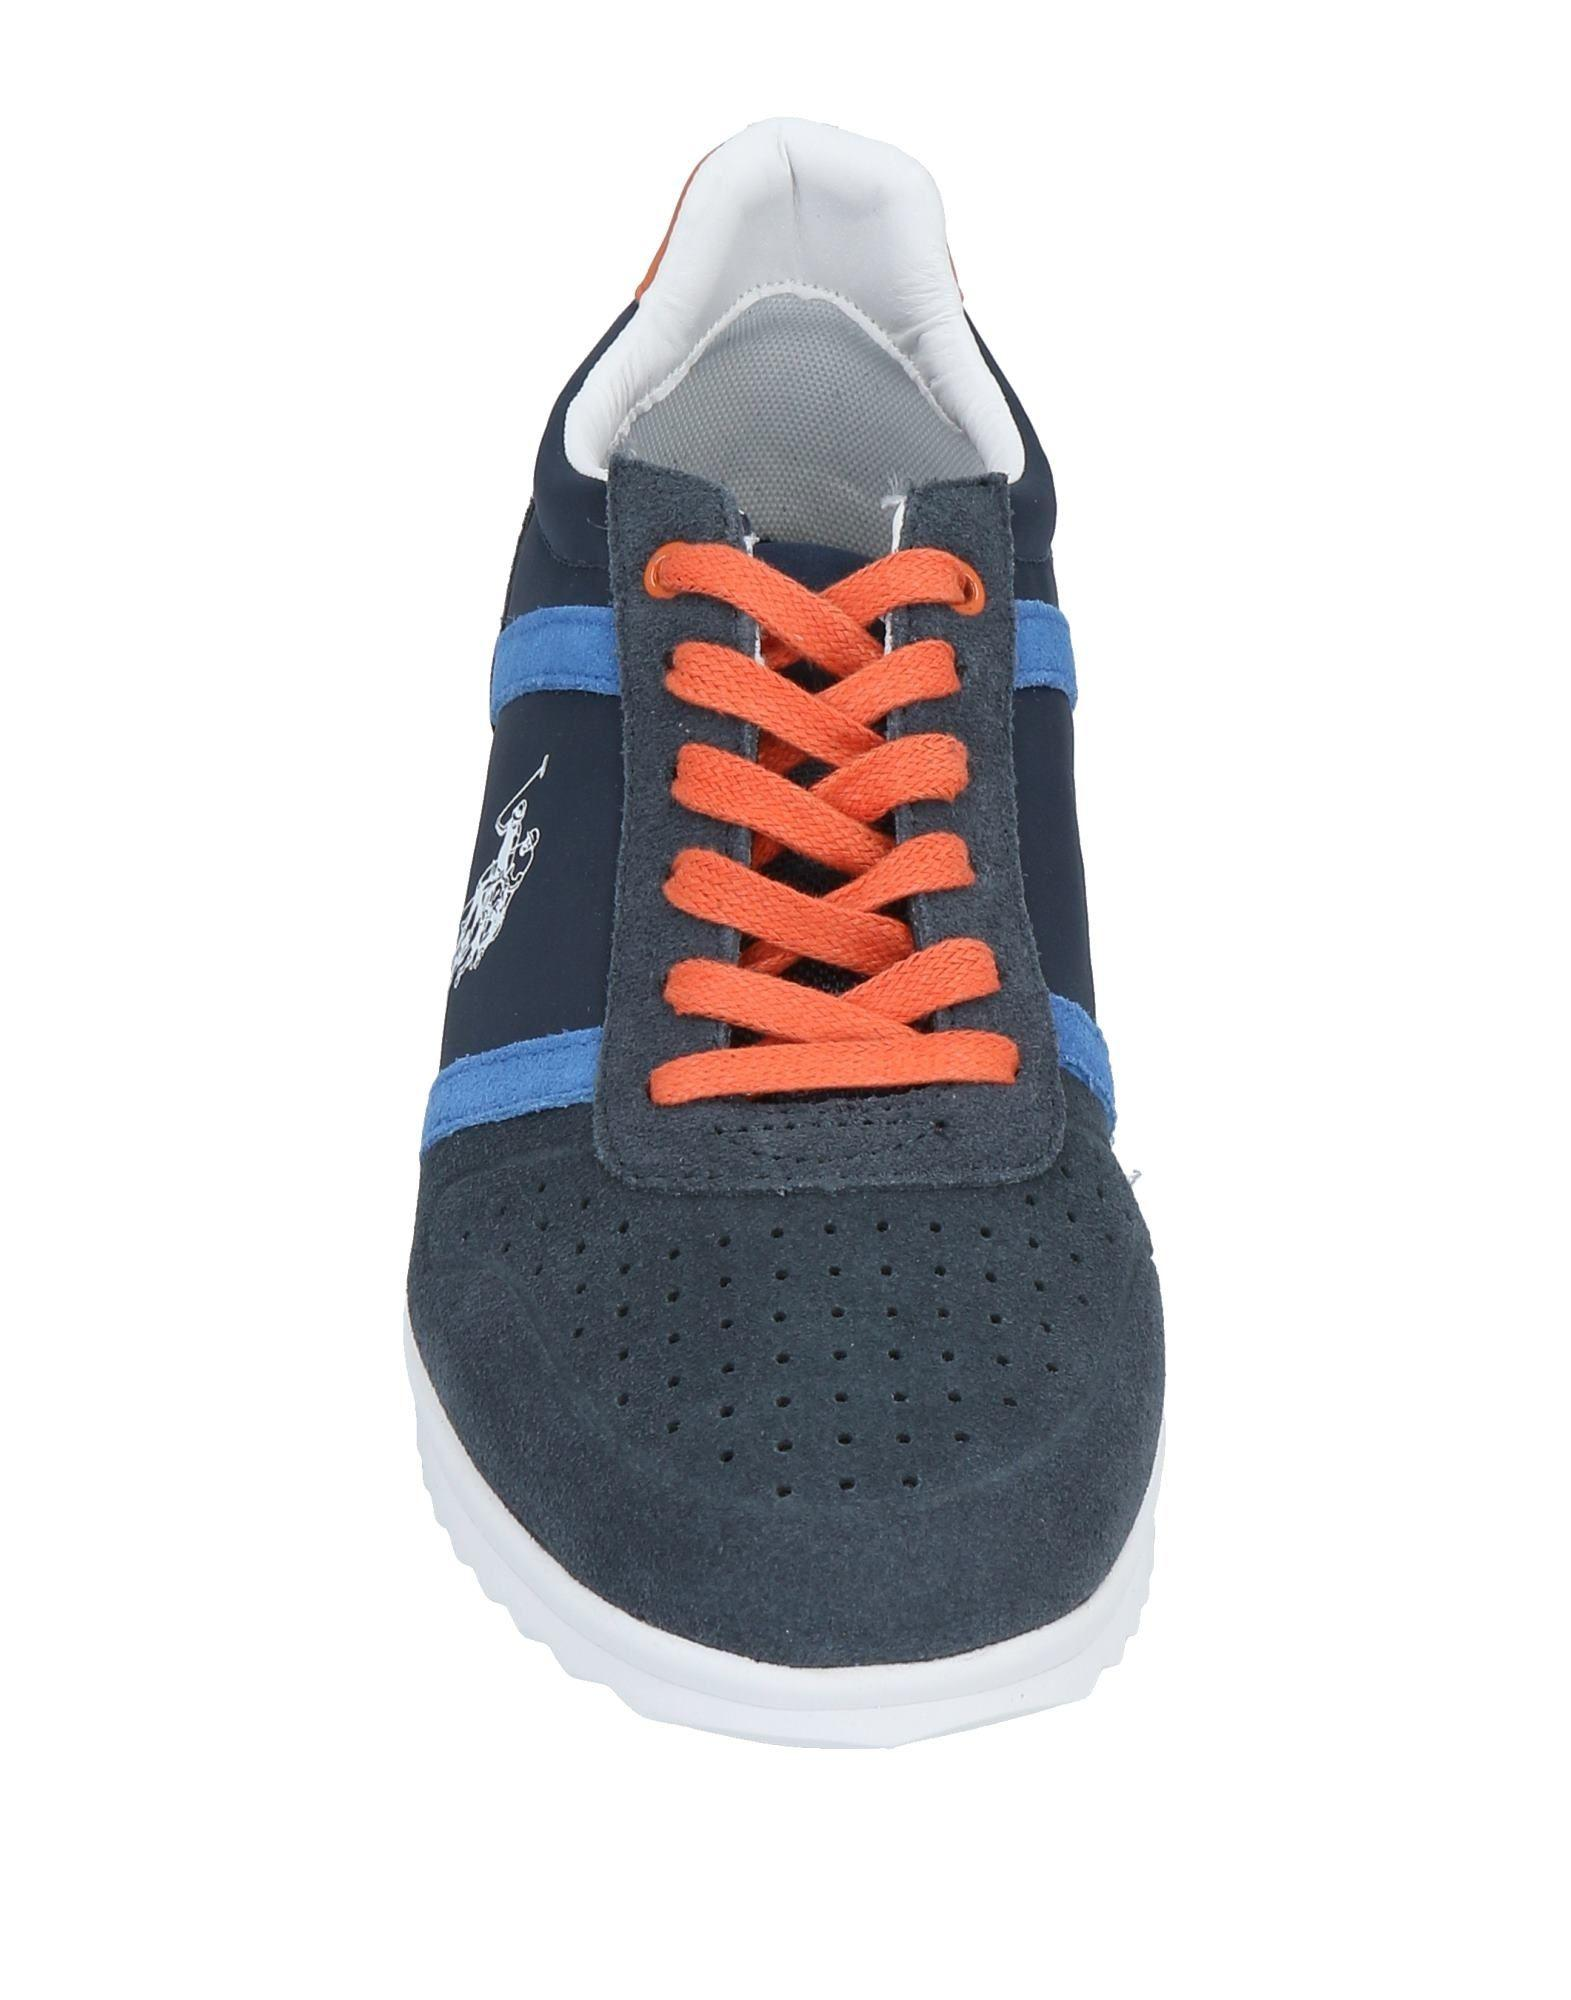 U.S. POLO ASSN. Leather Low-tops & Sneakers in Dark Blue (Blue) for Men